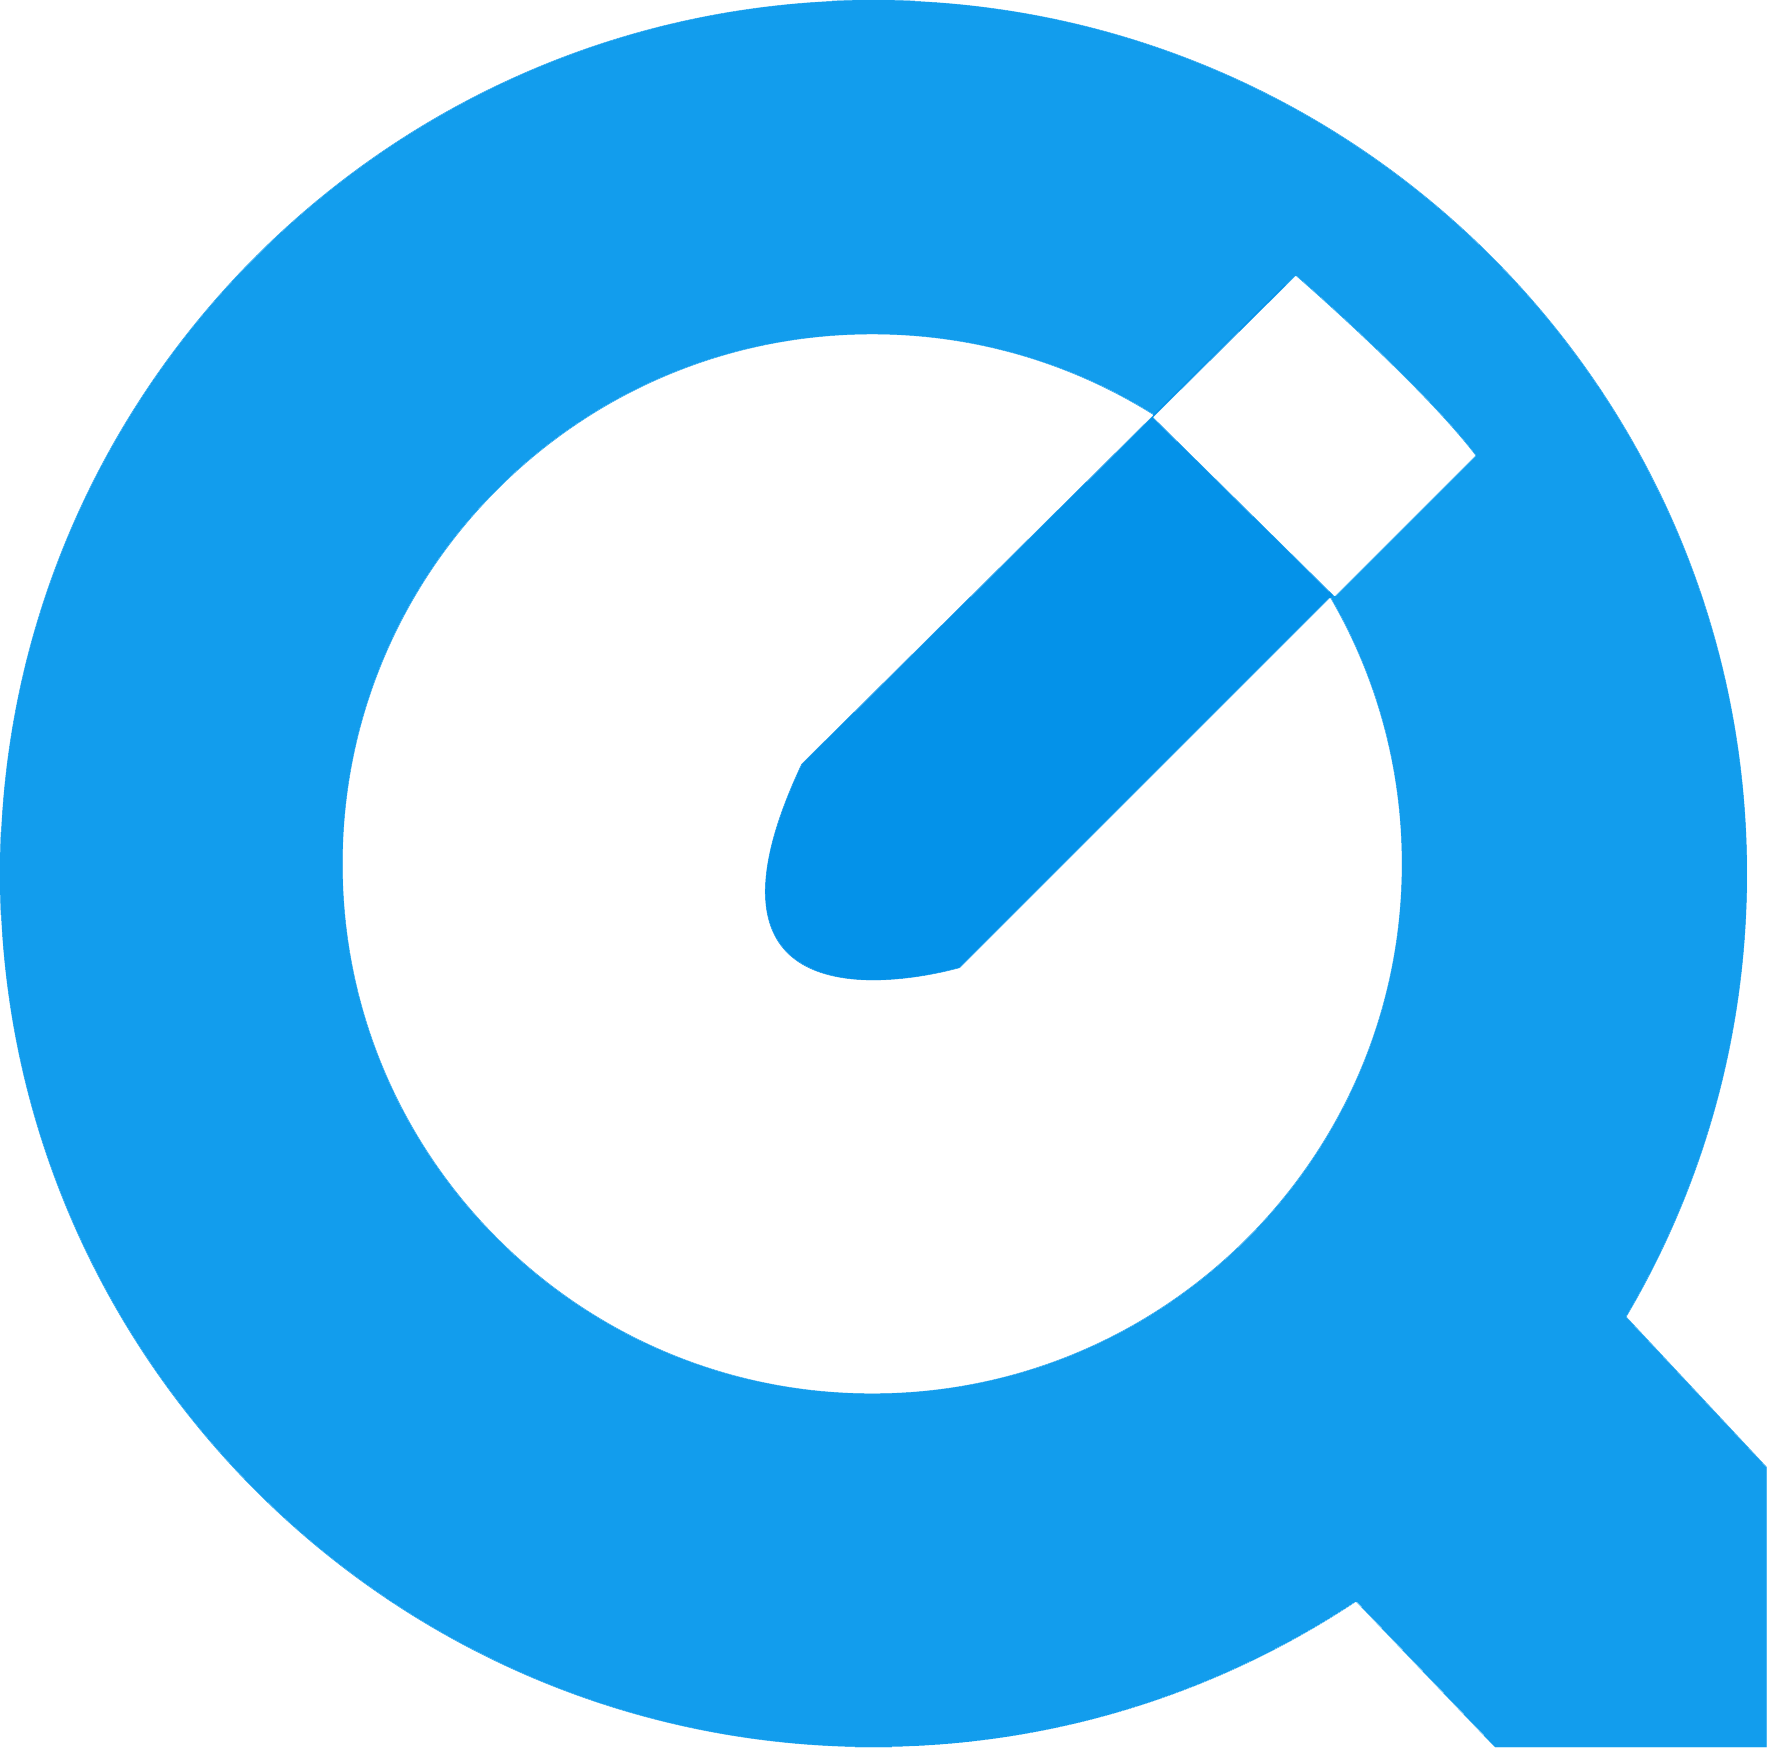 Shocking: Apple Decides To End QuickTime